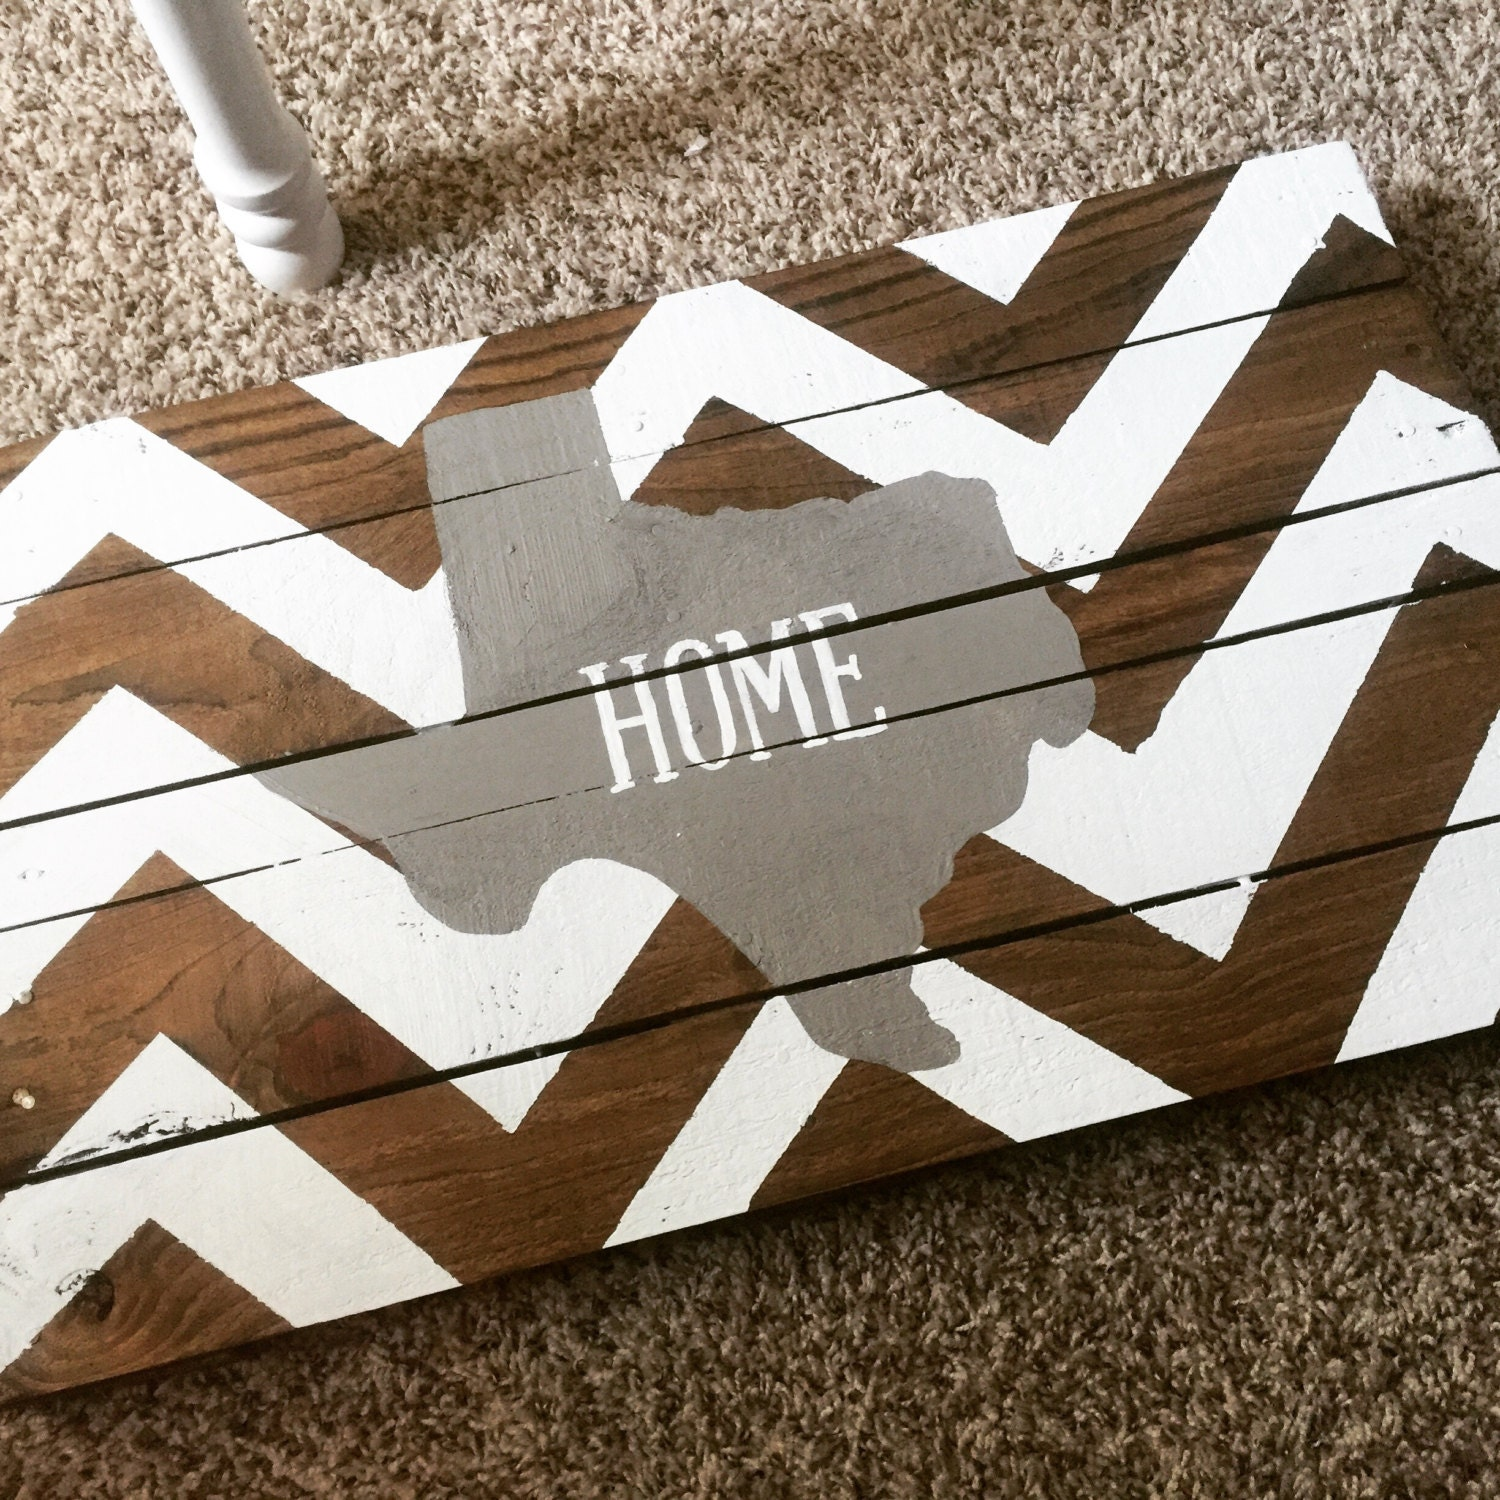 Wooden Texas Recycled Pallet Sign By Rusticrestyle On Etsy: Texas Chevron Pallet Sign Recycled Pallet Home Decor Wood